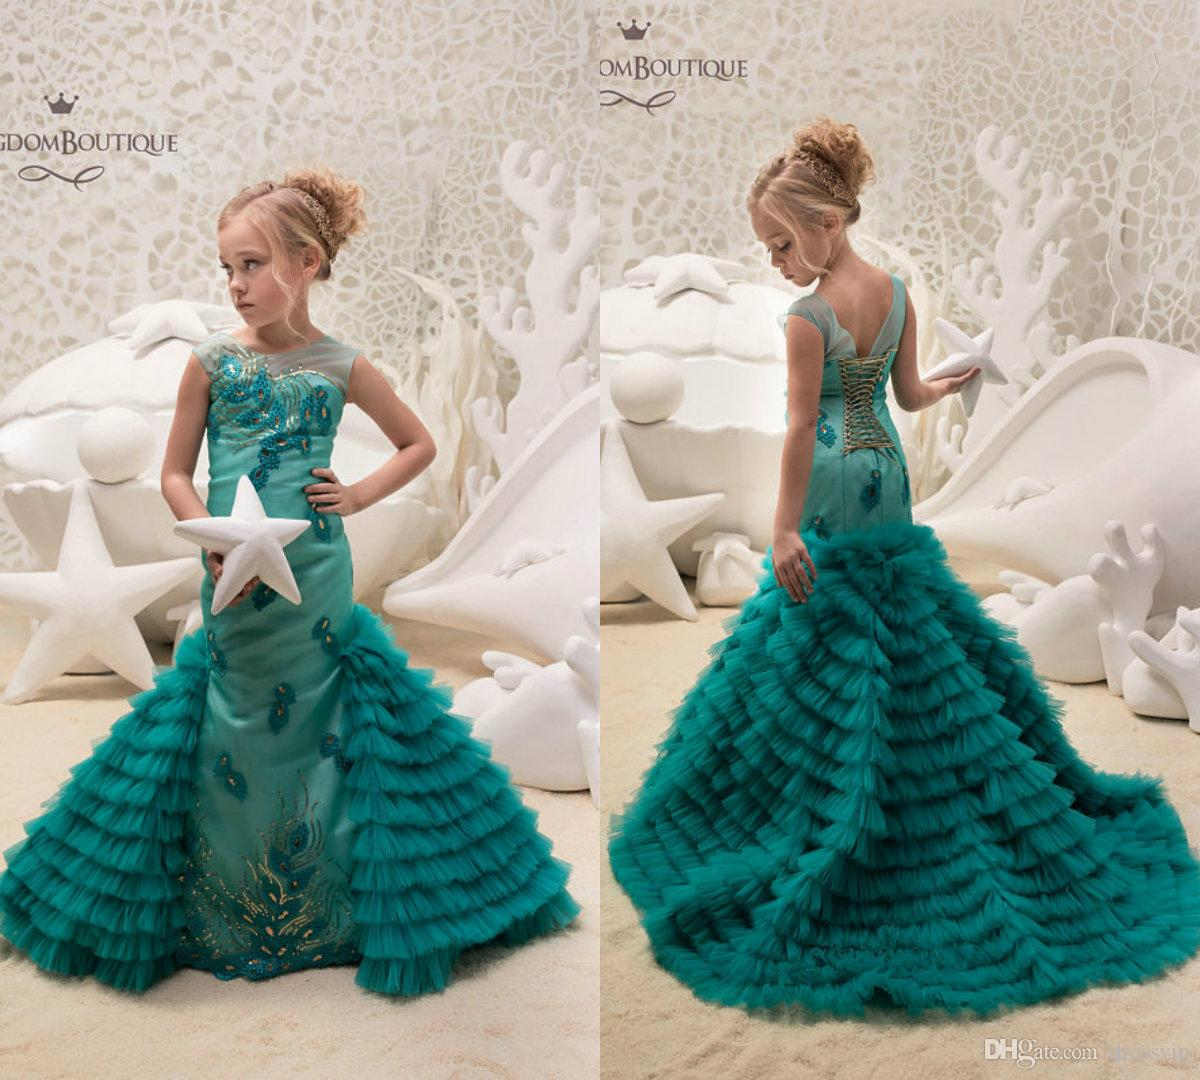 c1ed03162bfa Teal Mermaid Flower Girl Dresses Sequins Applique Ruffle Tiered ...